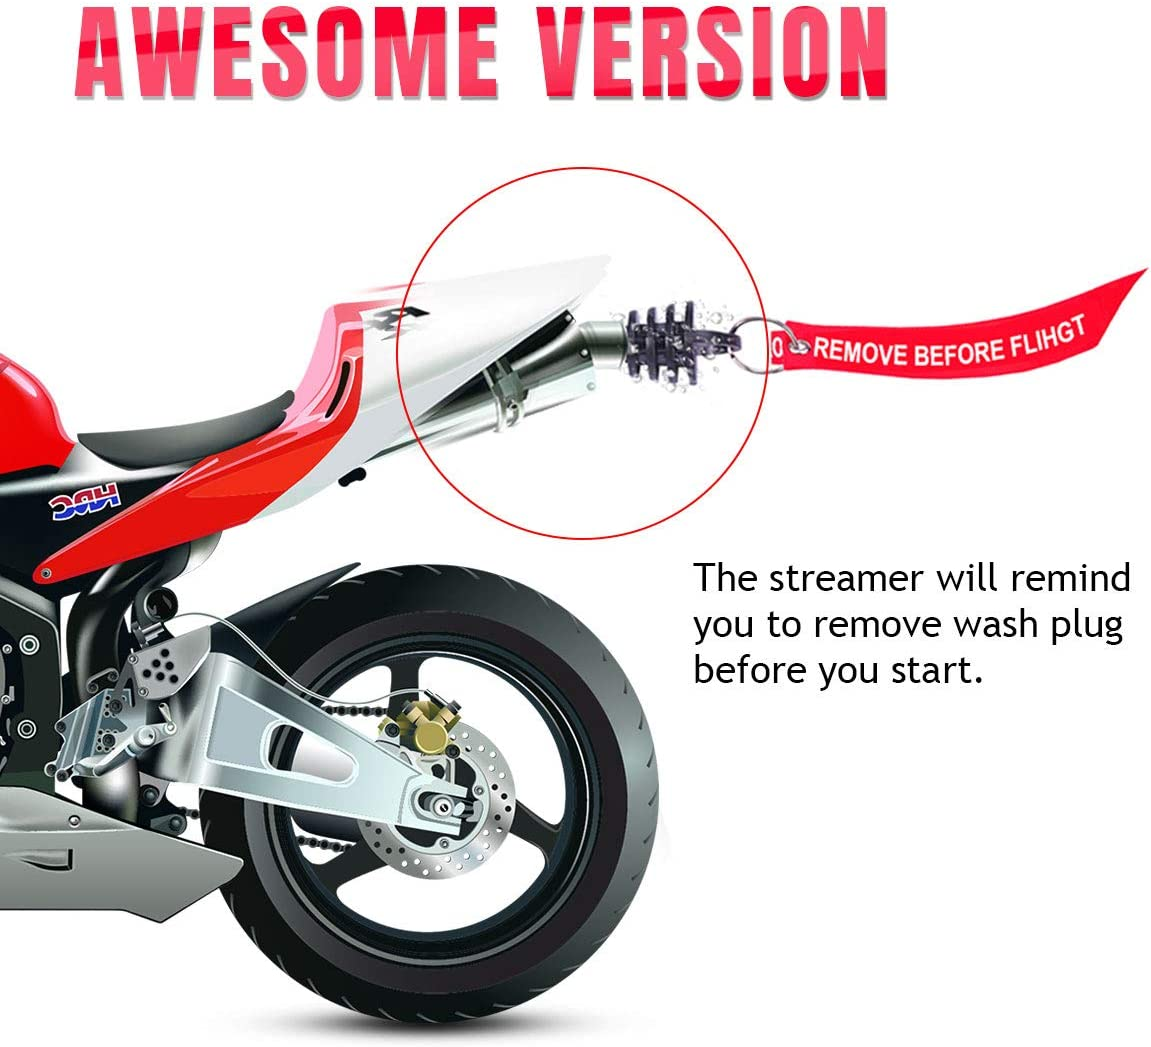 0.6-1.5 Wash Plugs 1 RED+1 BLACK 2 Pack Mufflers Exhaust Silencer Motorcycle Dirt Bike 2 Stroke w//Streamer Remove Before Start Engine ATV Quad Rubber Exhaust Pipe Plugs